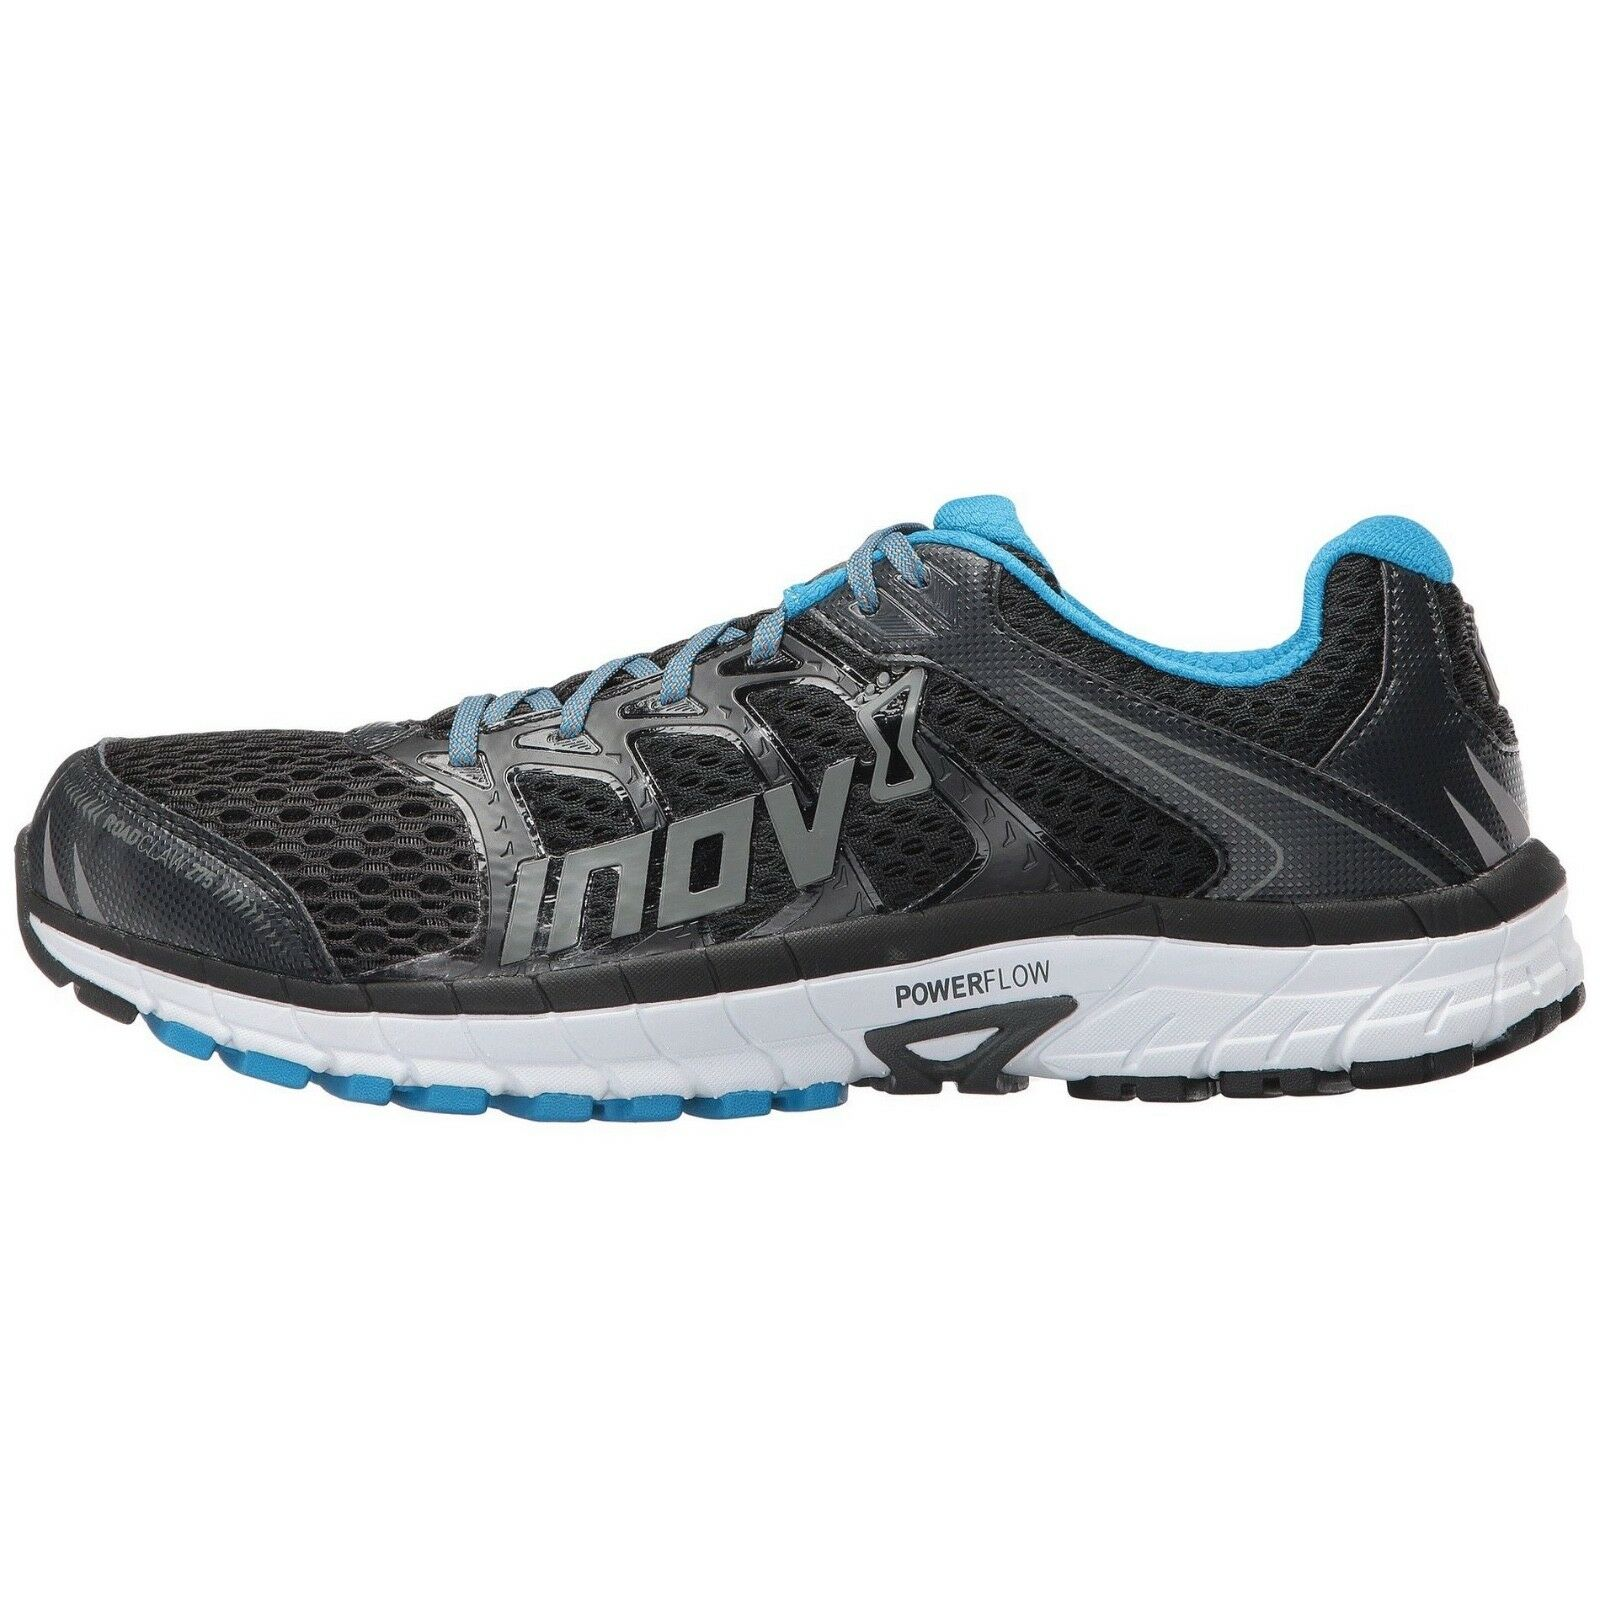 Inov-8 Men's Road Claw 275 Road Running shoes